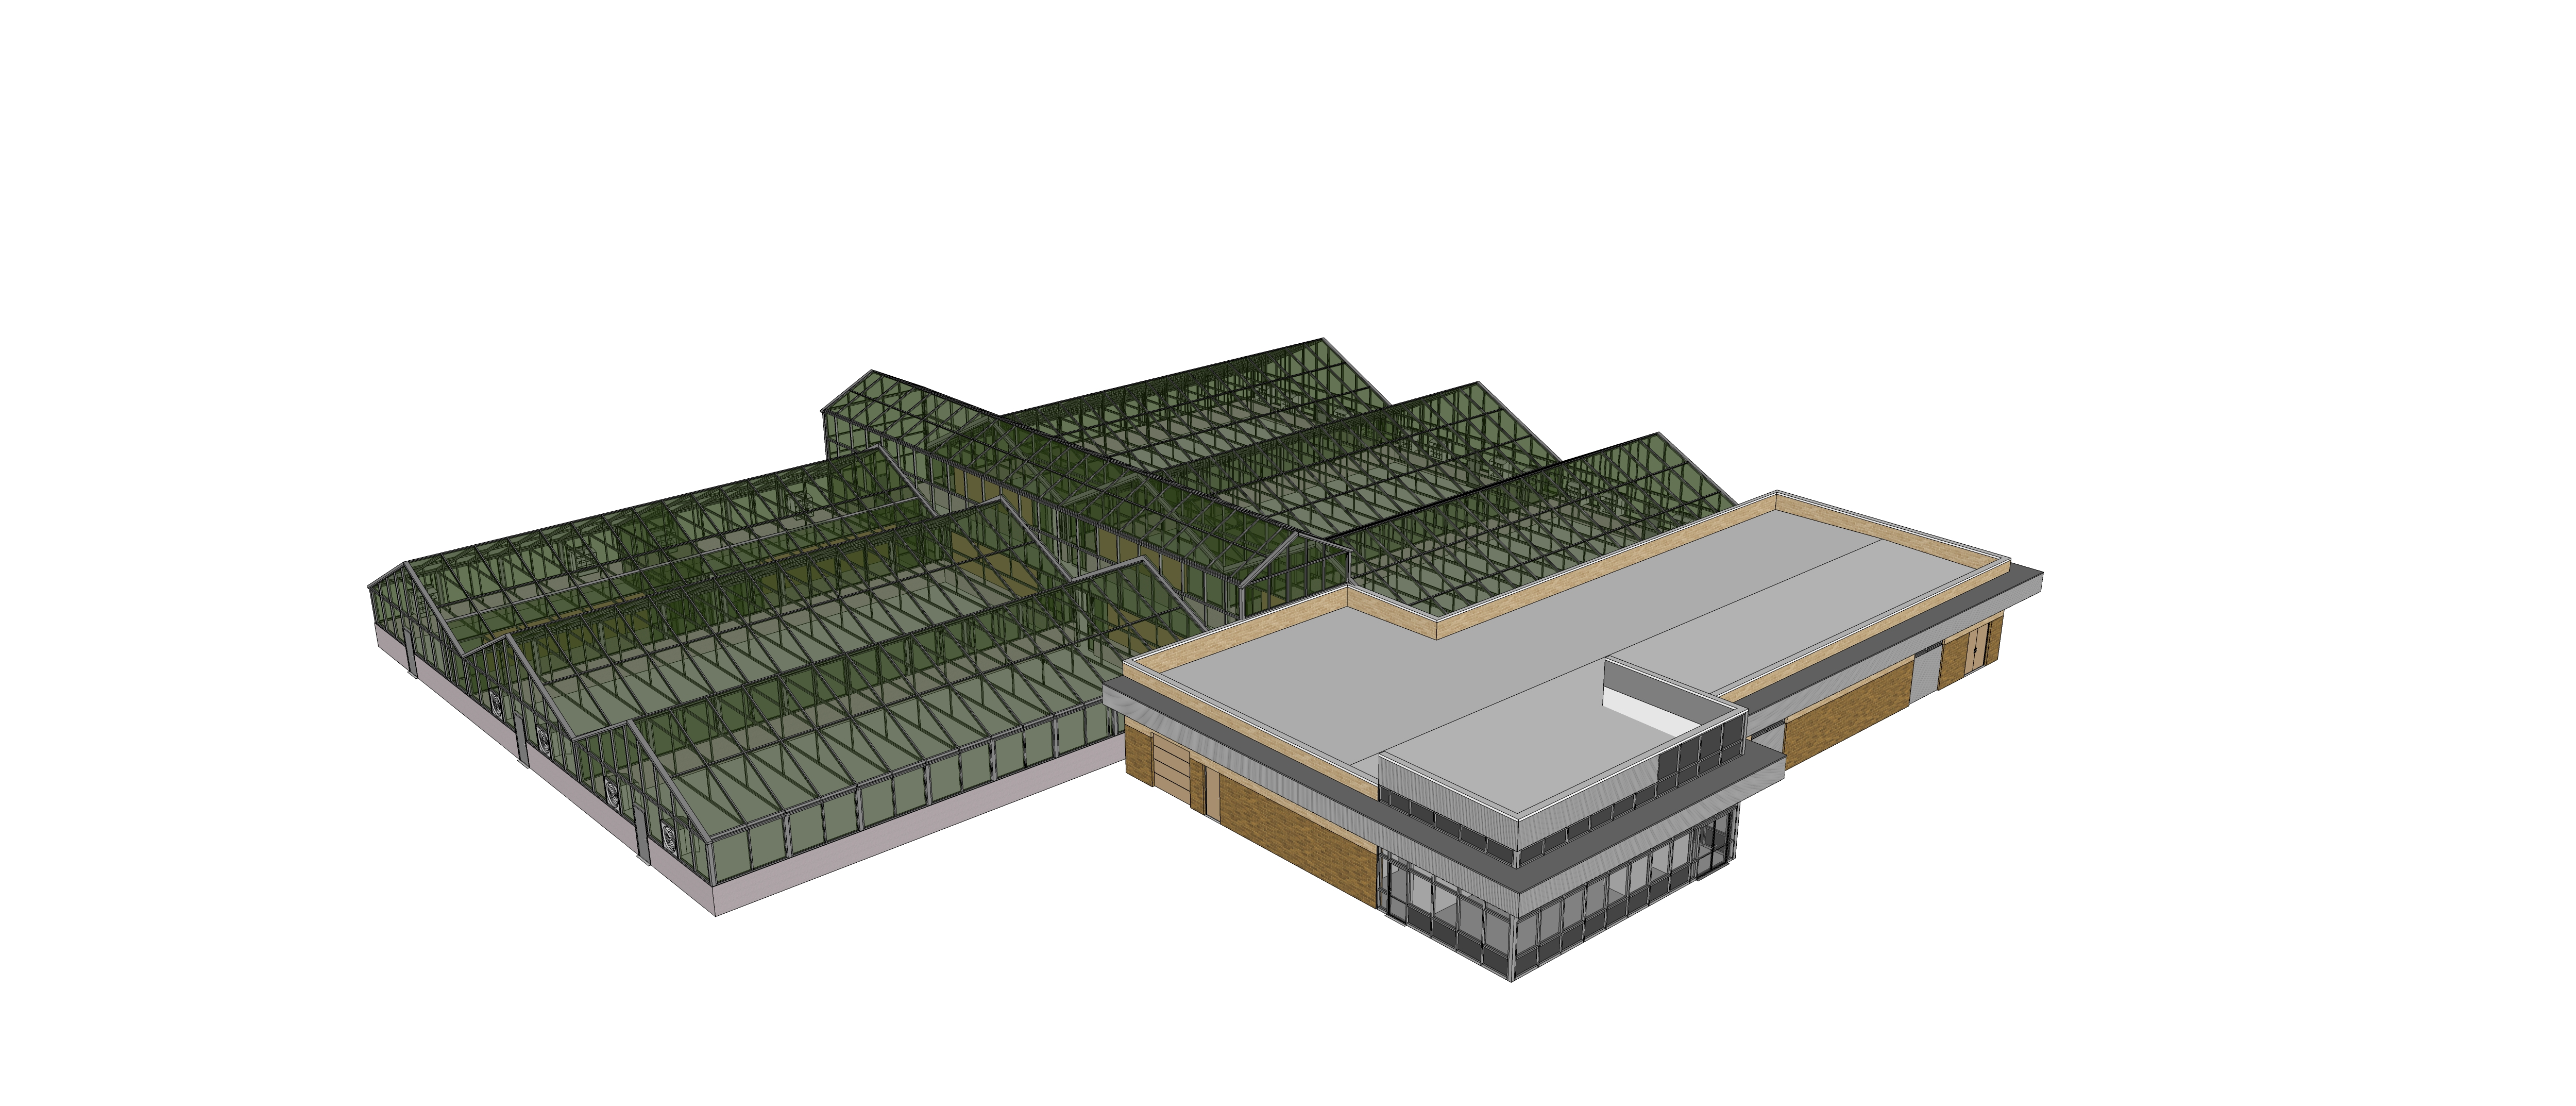 PERC building SketchUp model